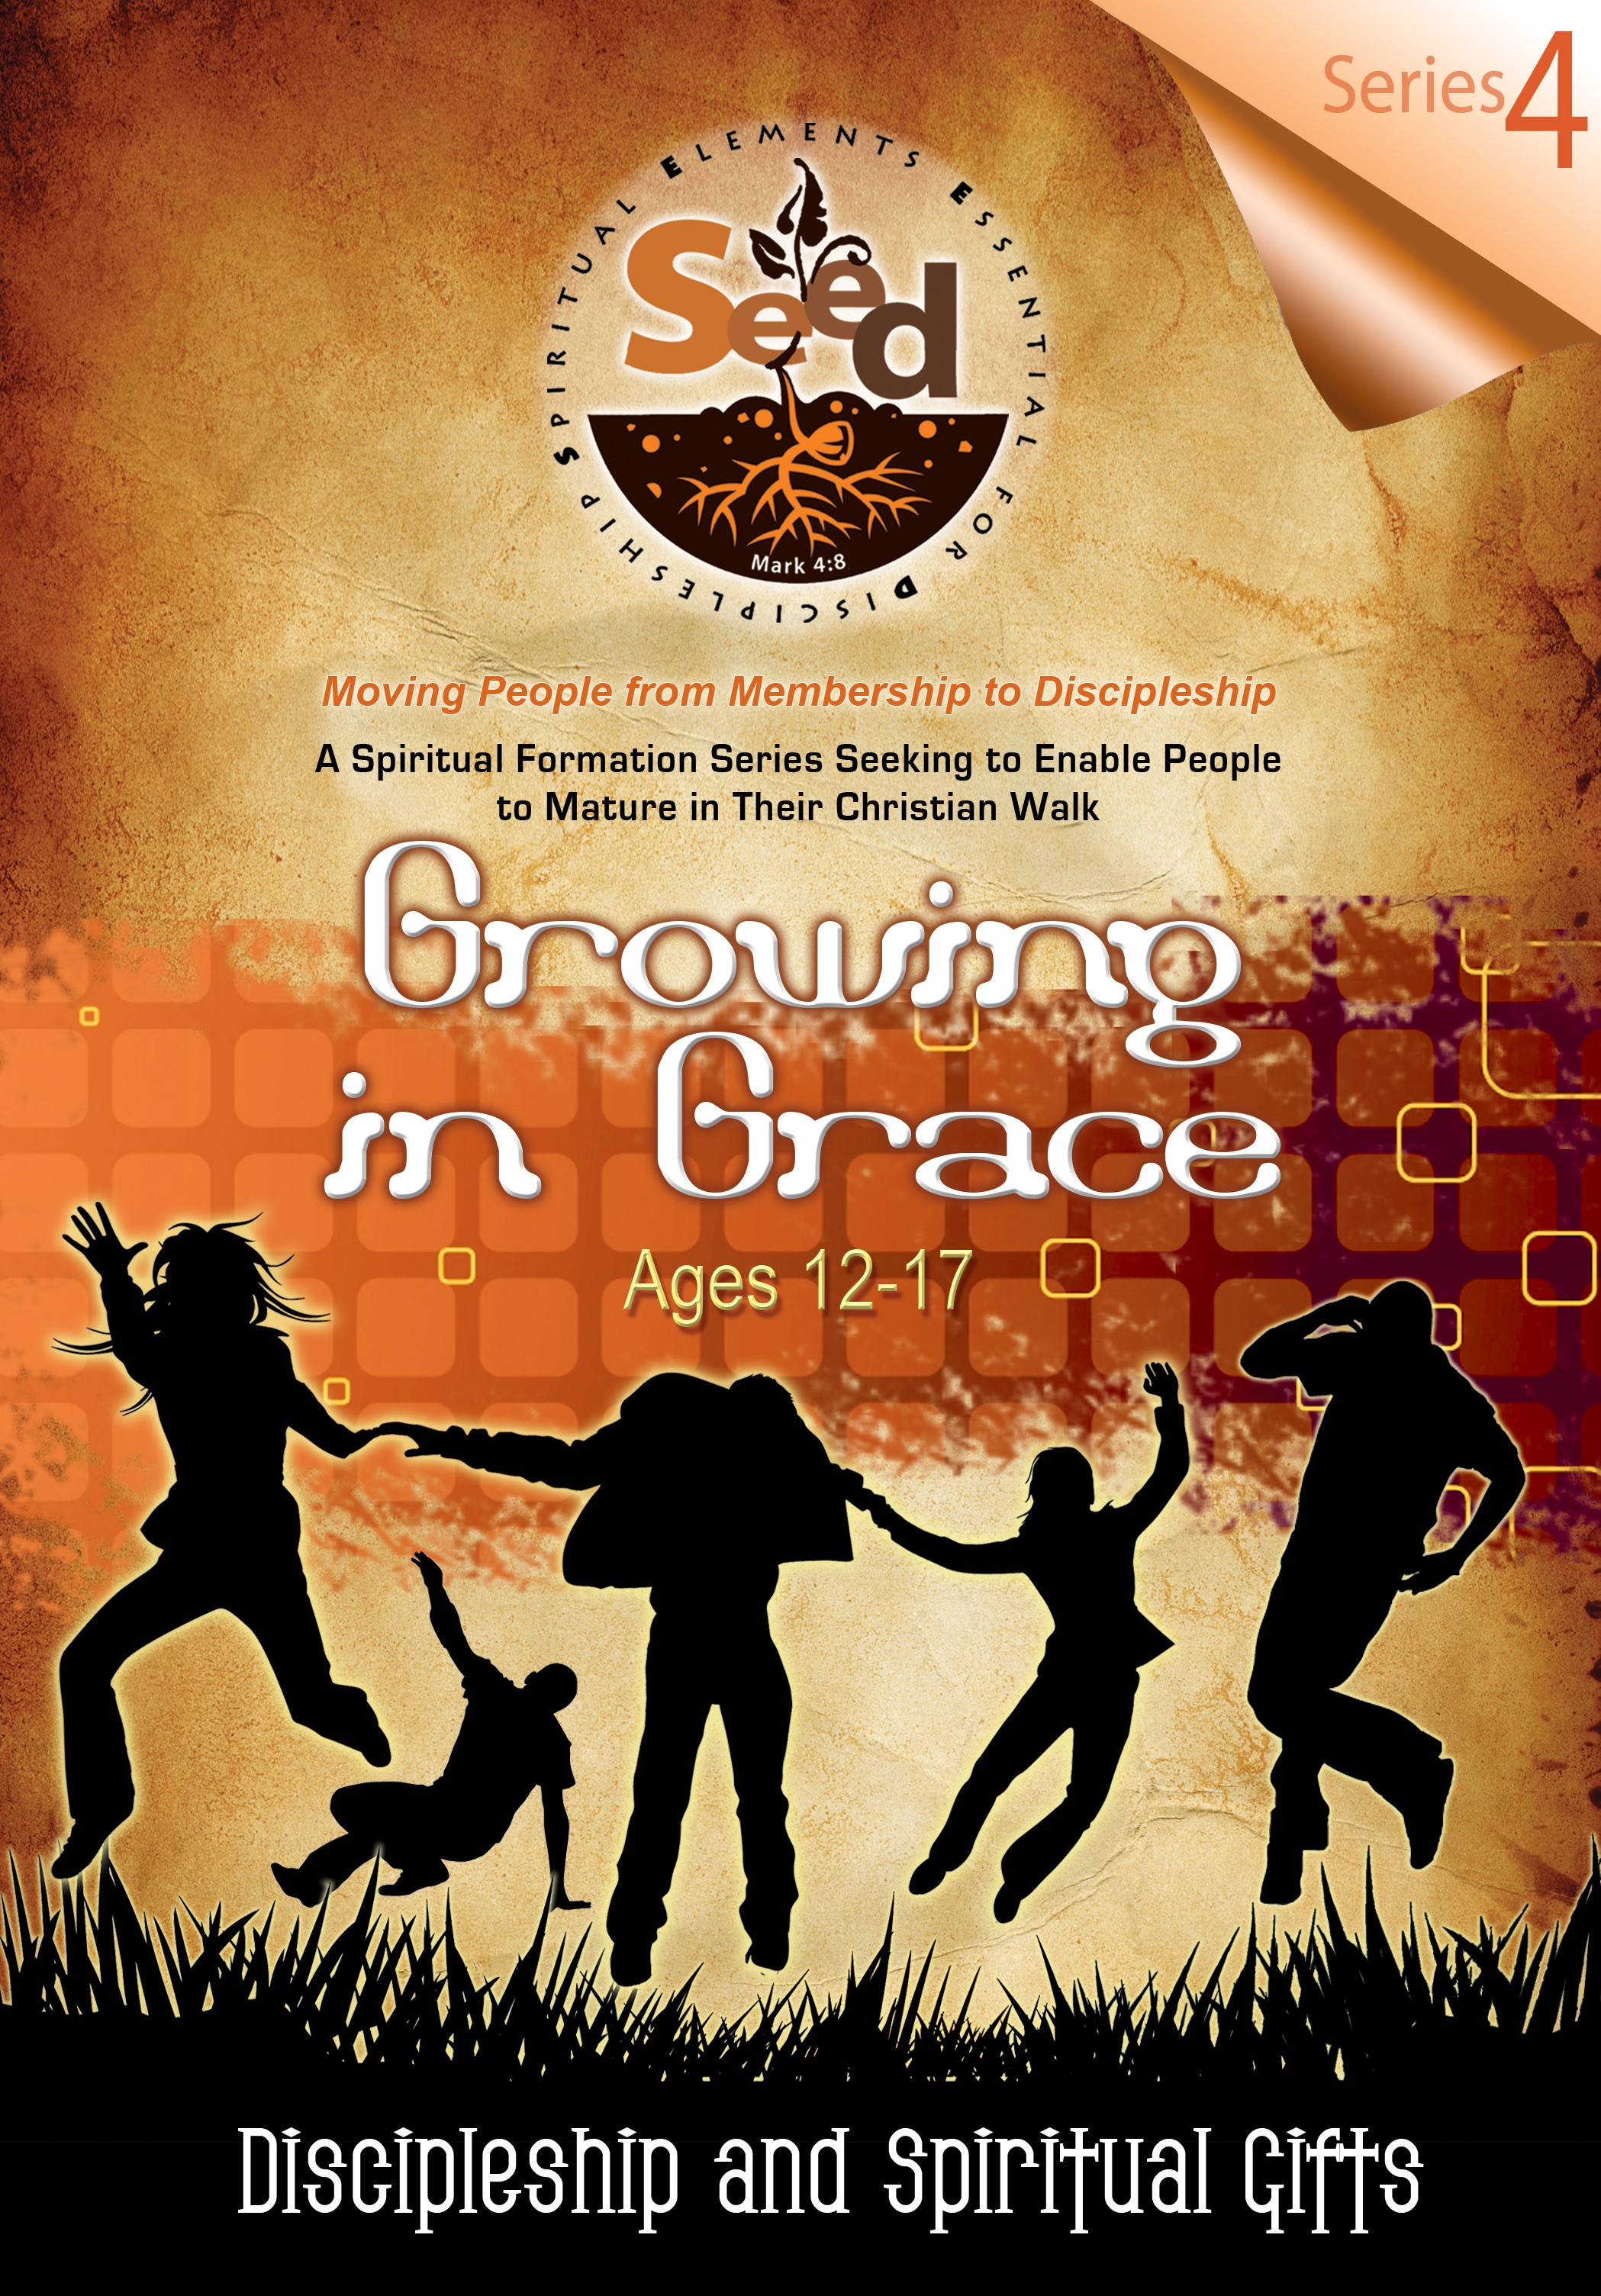 SEED Growing in Grace (Ages 12-17): Series 4: Discipleship and Spiritual Gifts